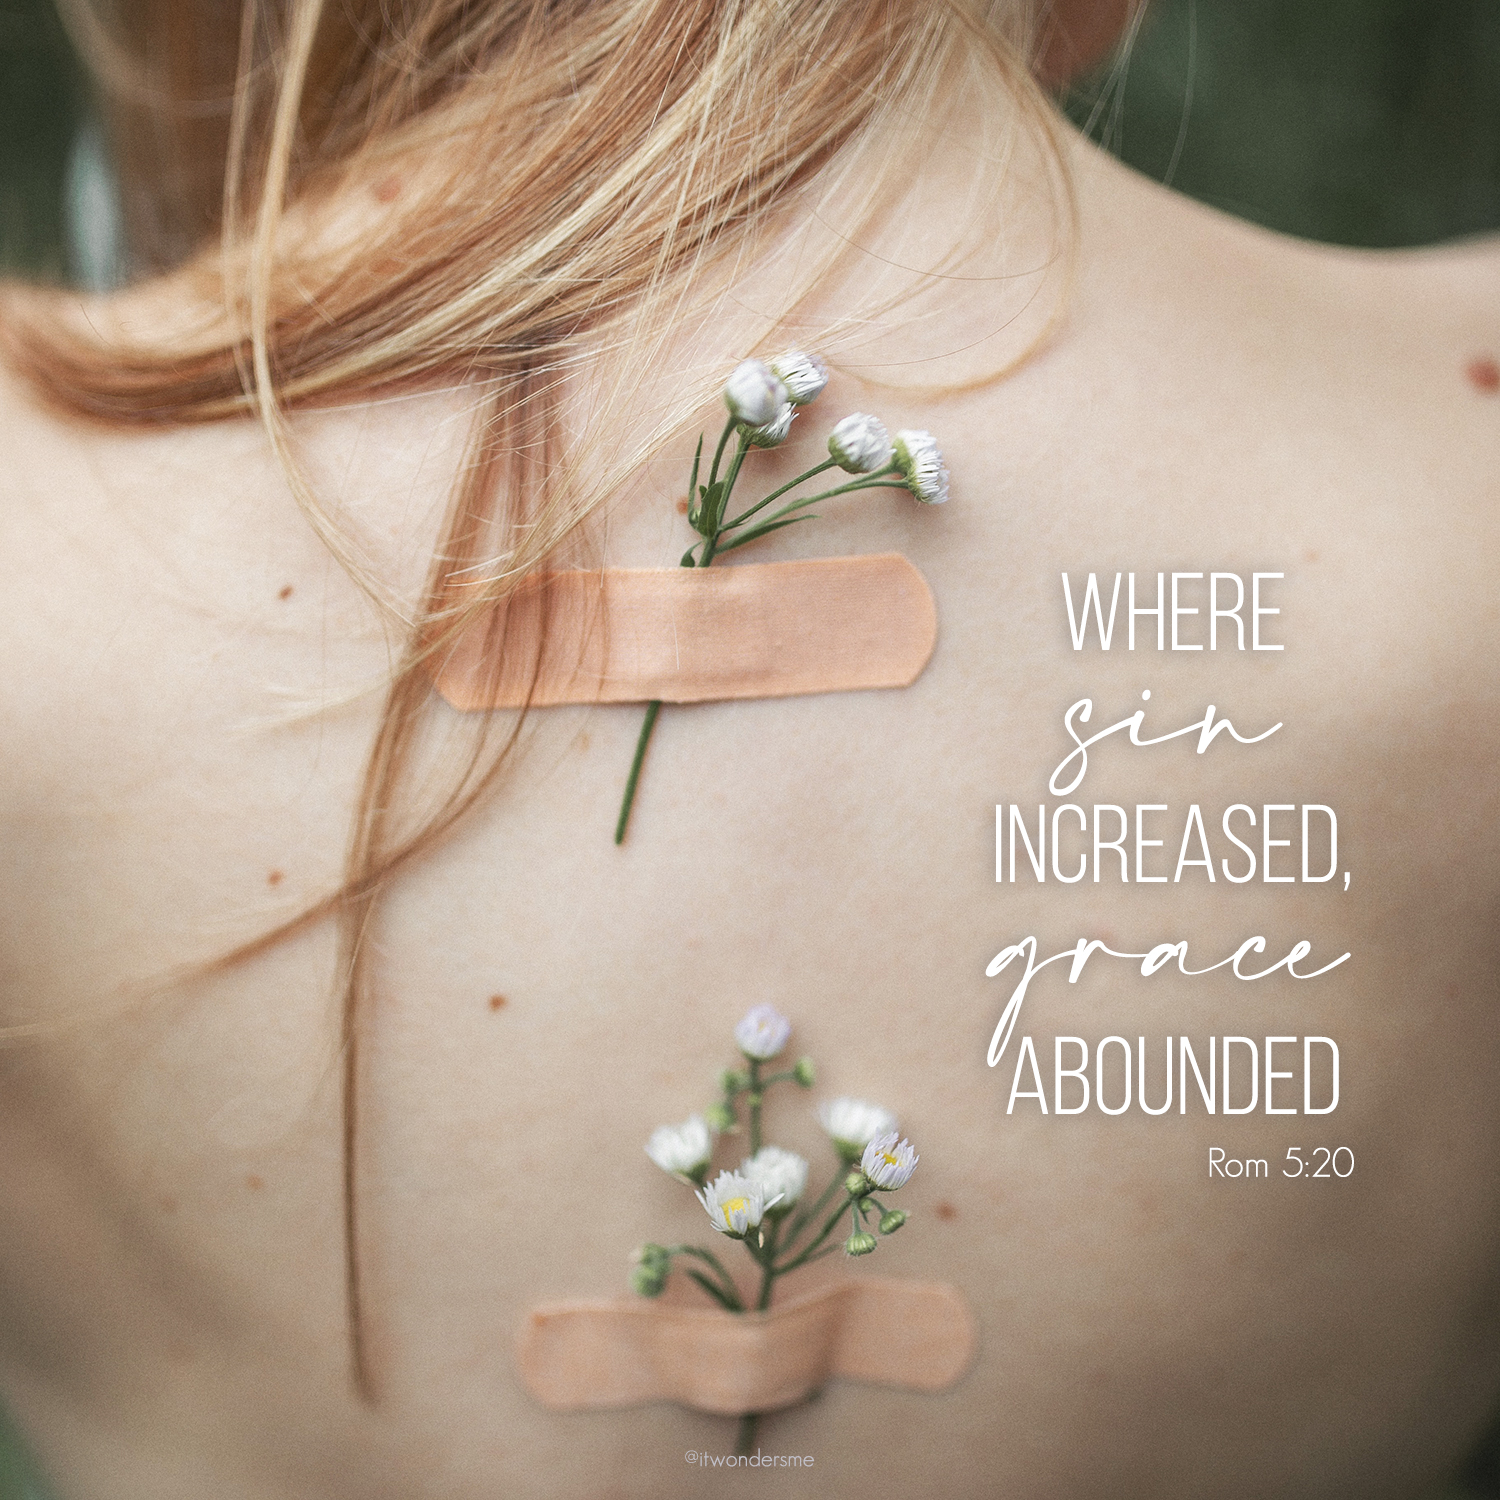 Where sin abounds, grace abounds more